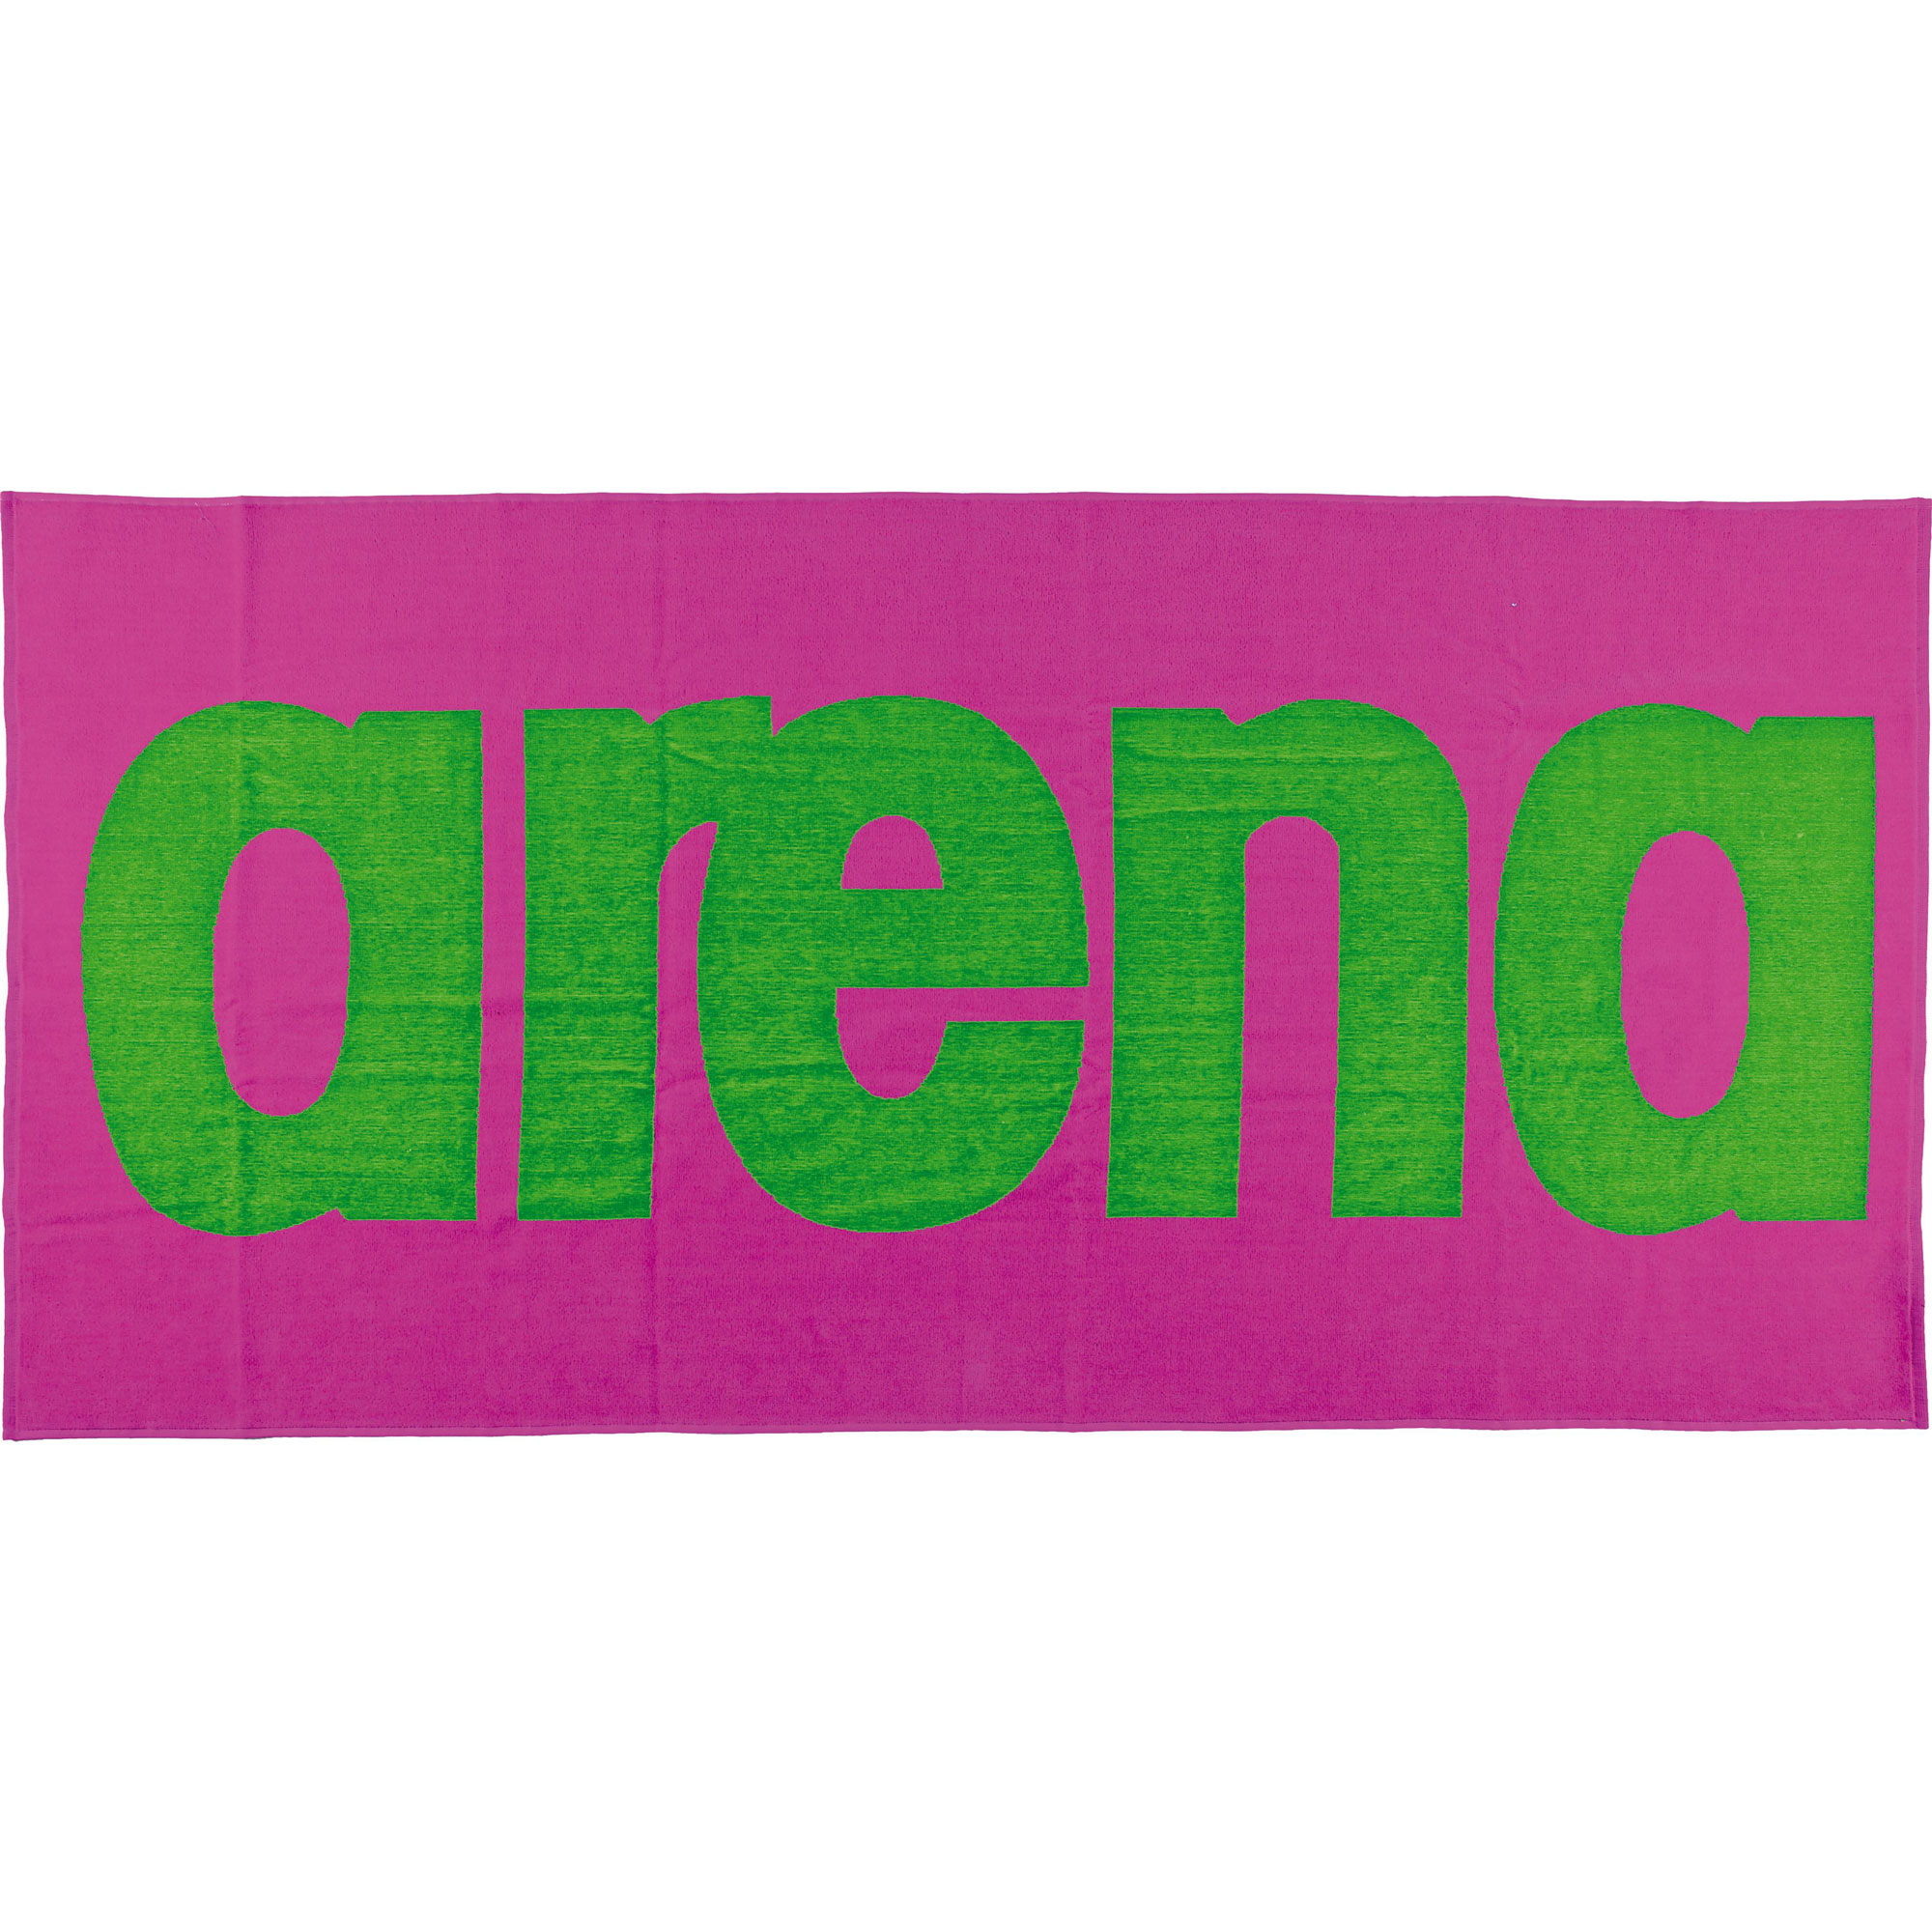 Arena Handtuch Logo Towel 51281-96 One size